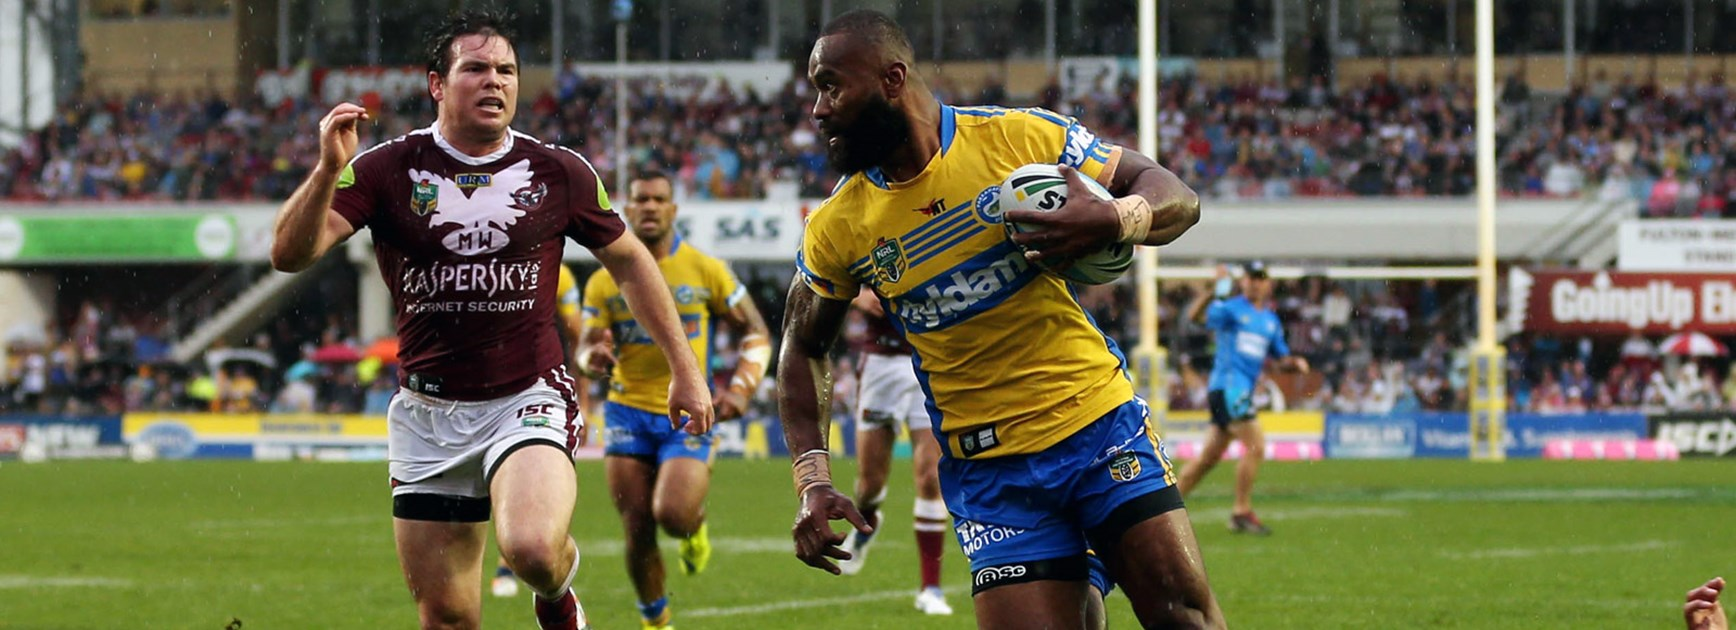 Semi Radradra crosses for a try against the Sea Eagles at Brookvale Oval.